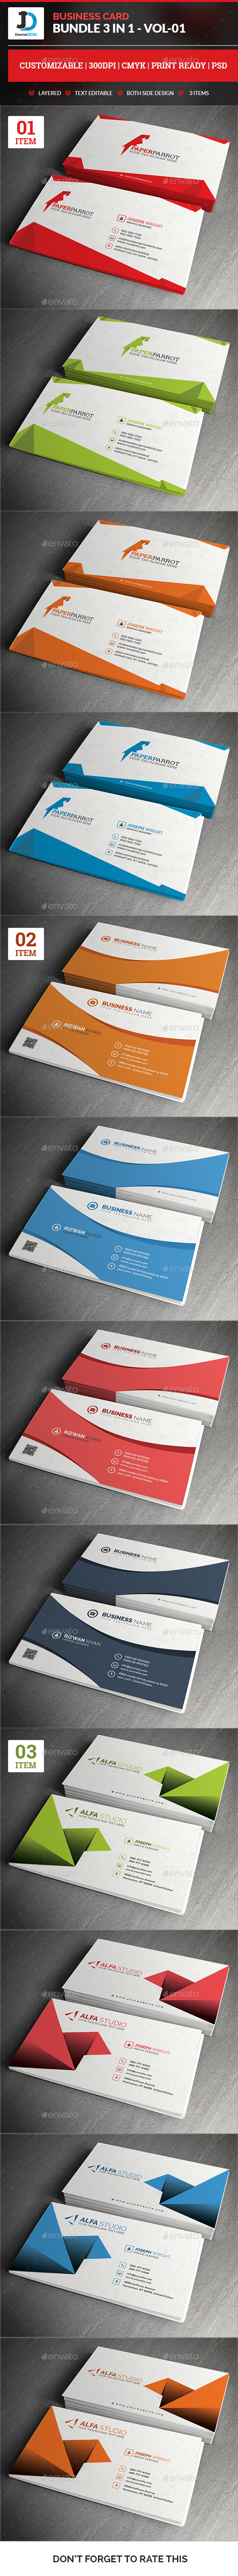 Business Card Bundle 3 in 1 - Vol-1 - Corporate Business Cards